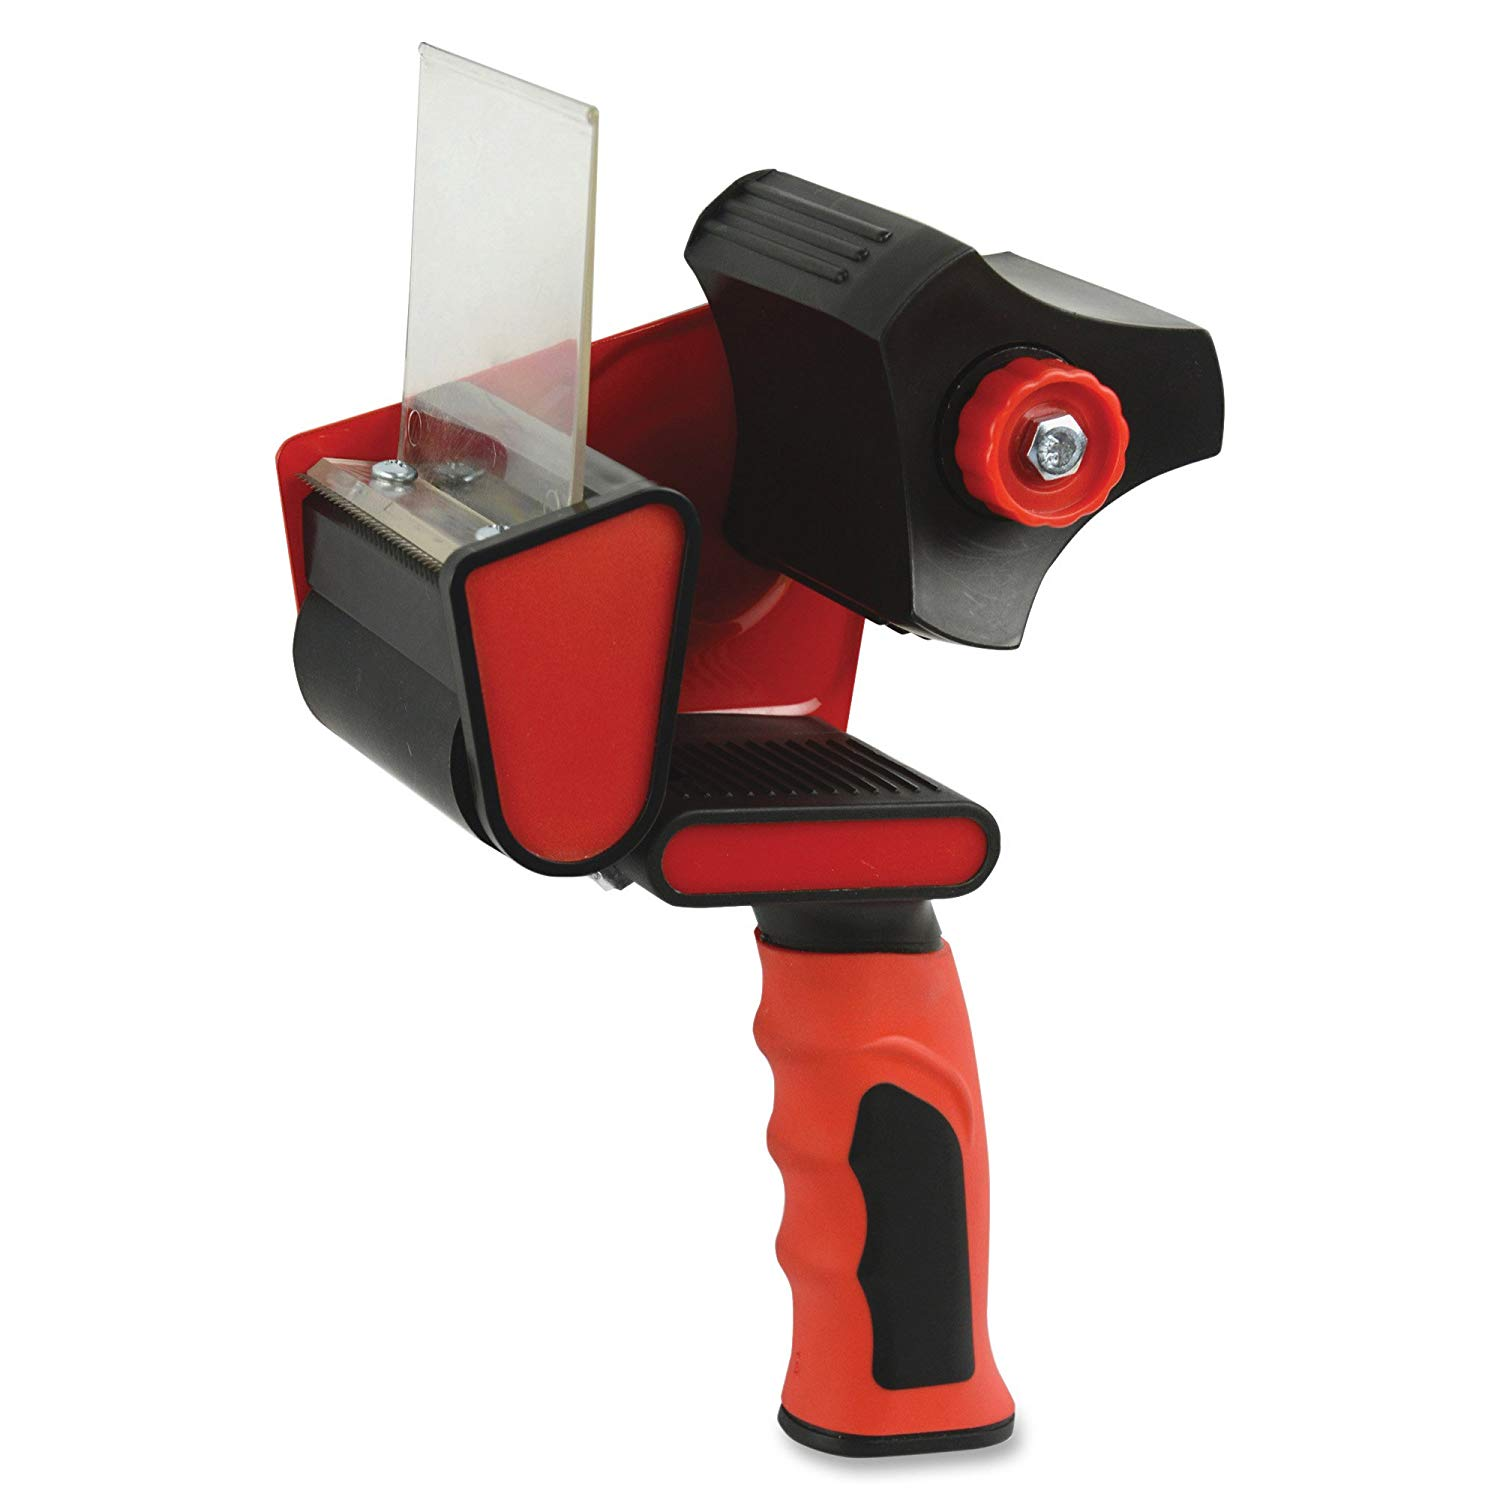 2 inch Packaging Heavy Duty Box Packing Tape Dispenser Gun with Silicone handle Factory